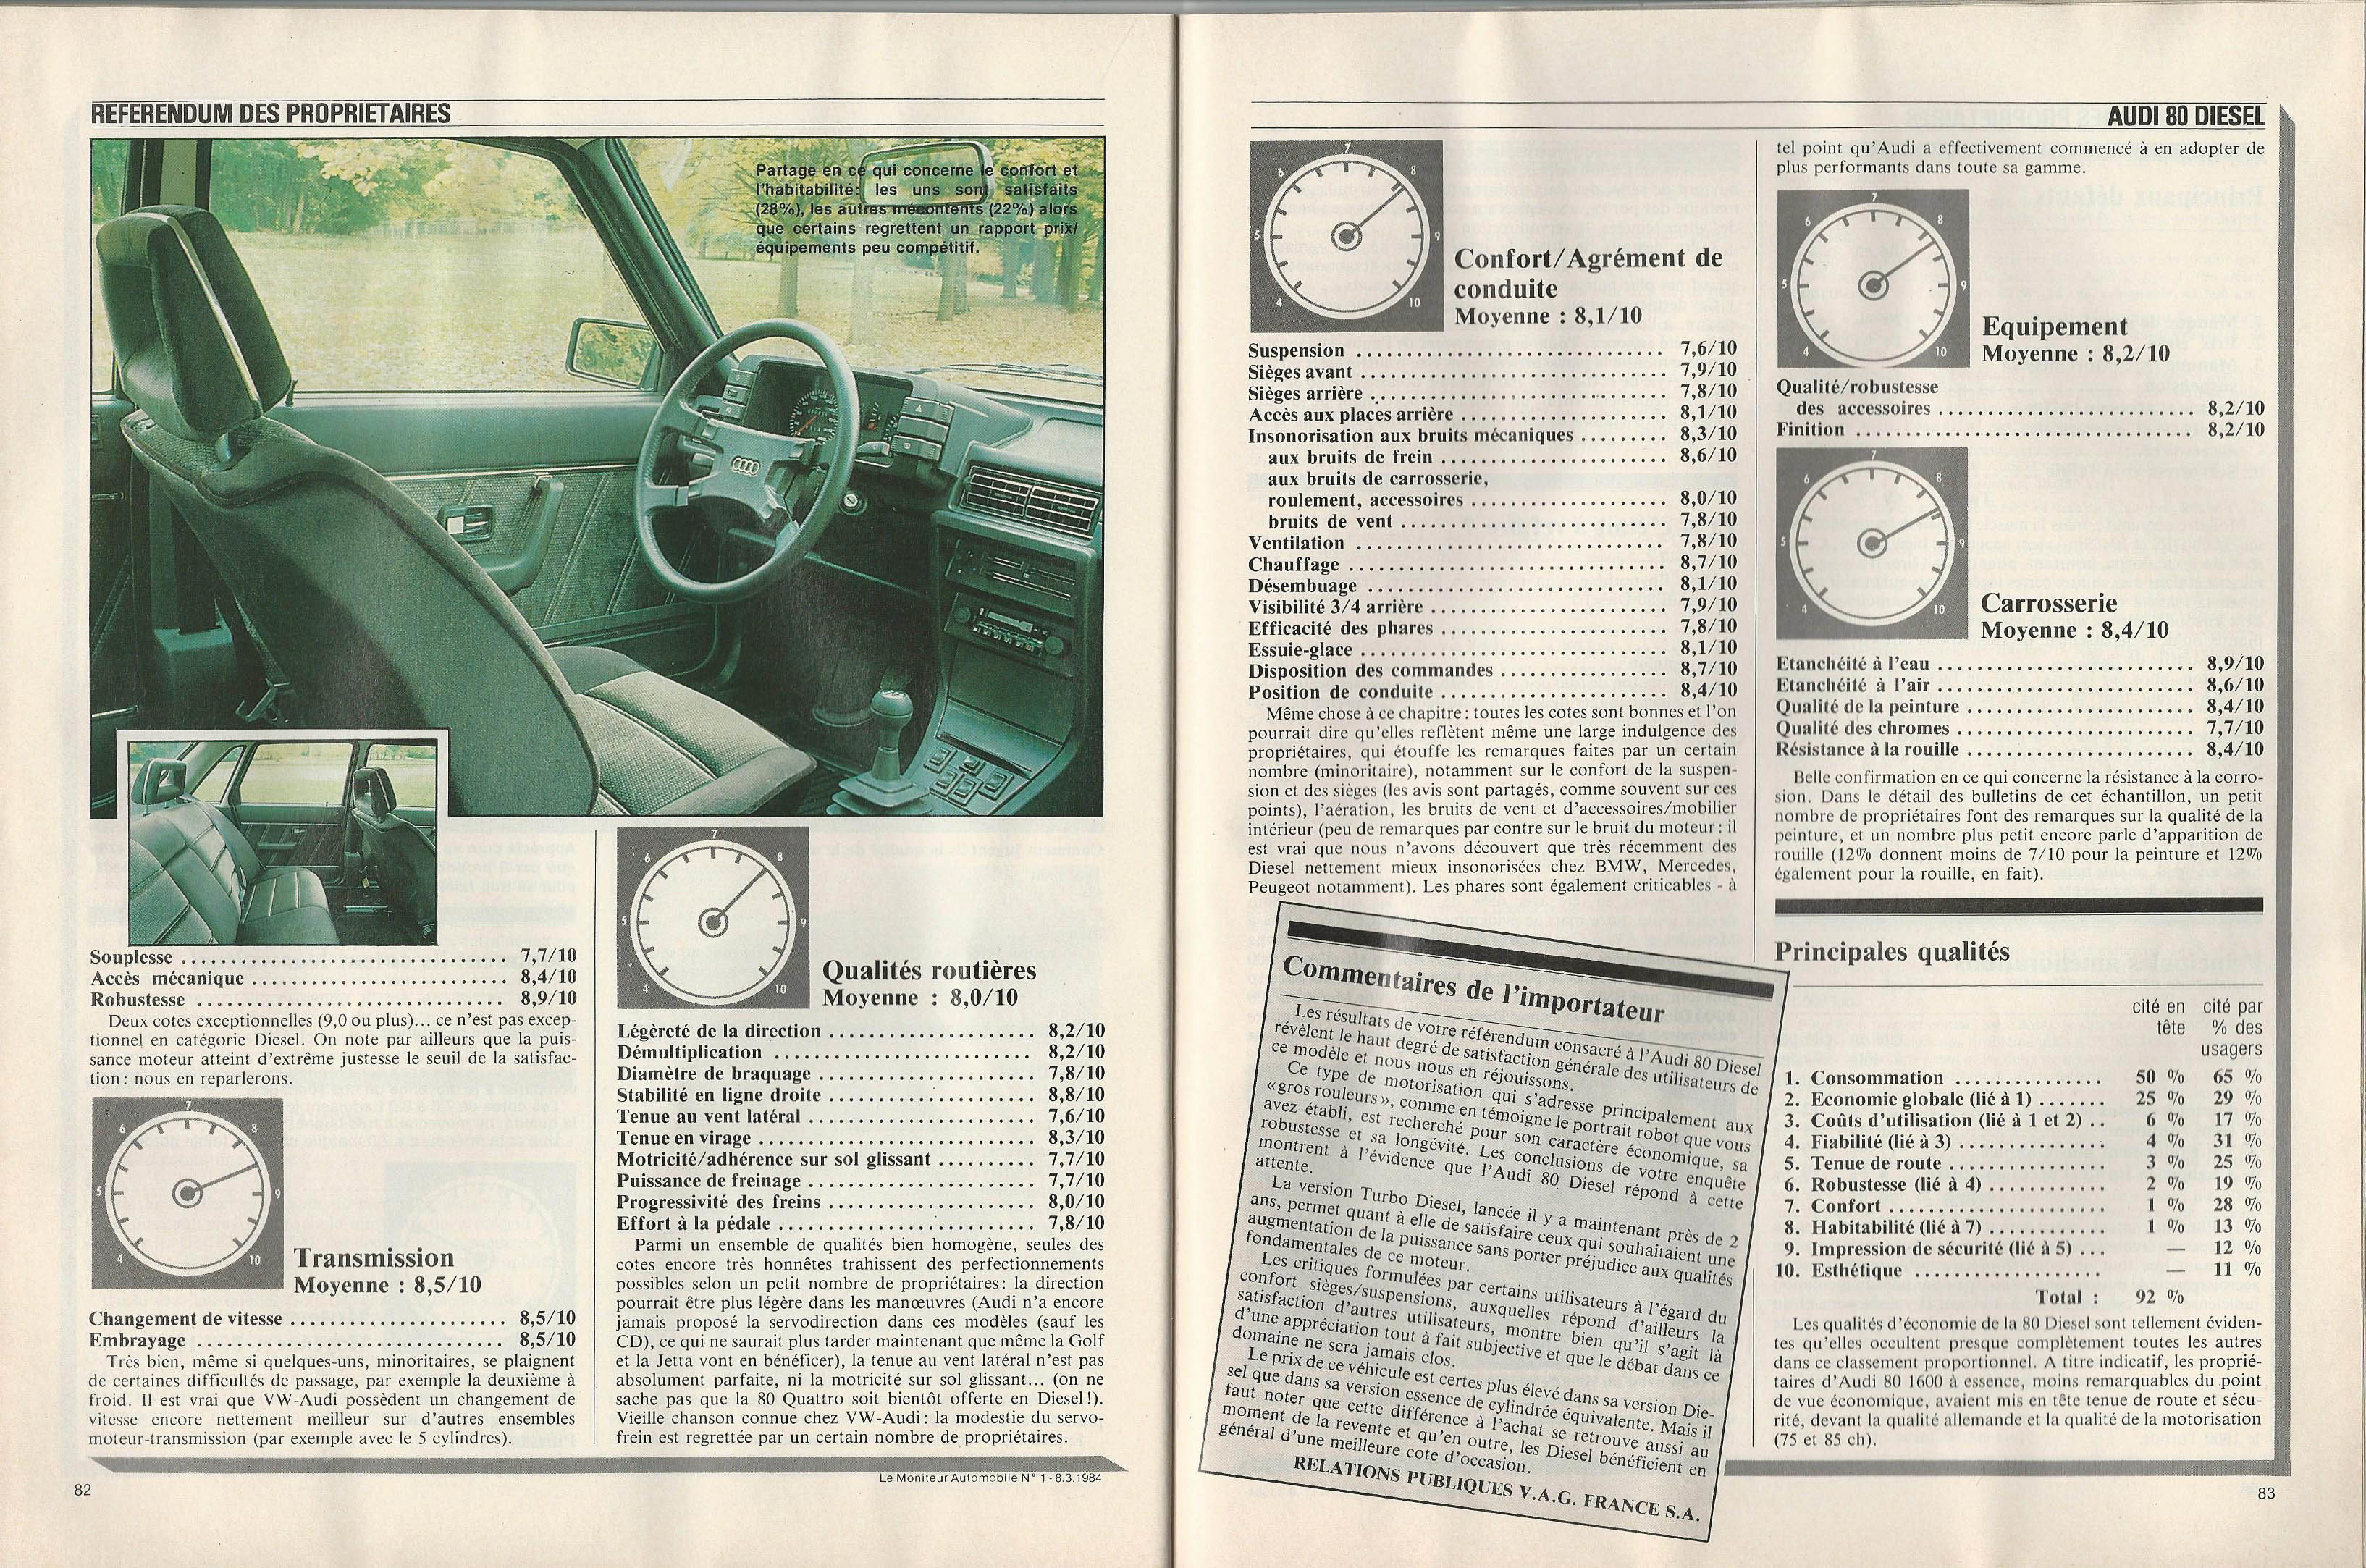 Moniteur Automobile 01 - 08 Mars 1984 (33)